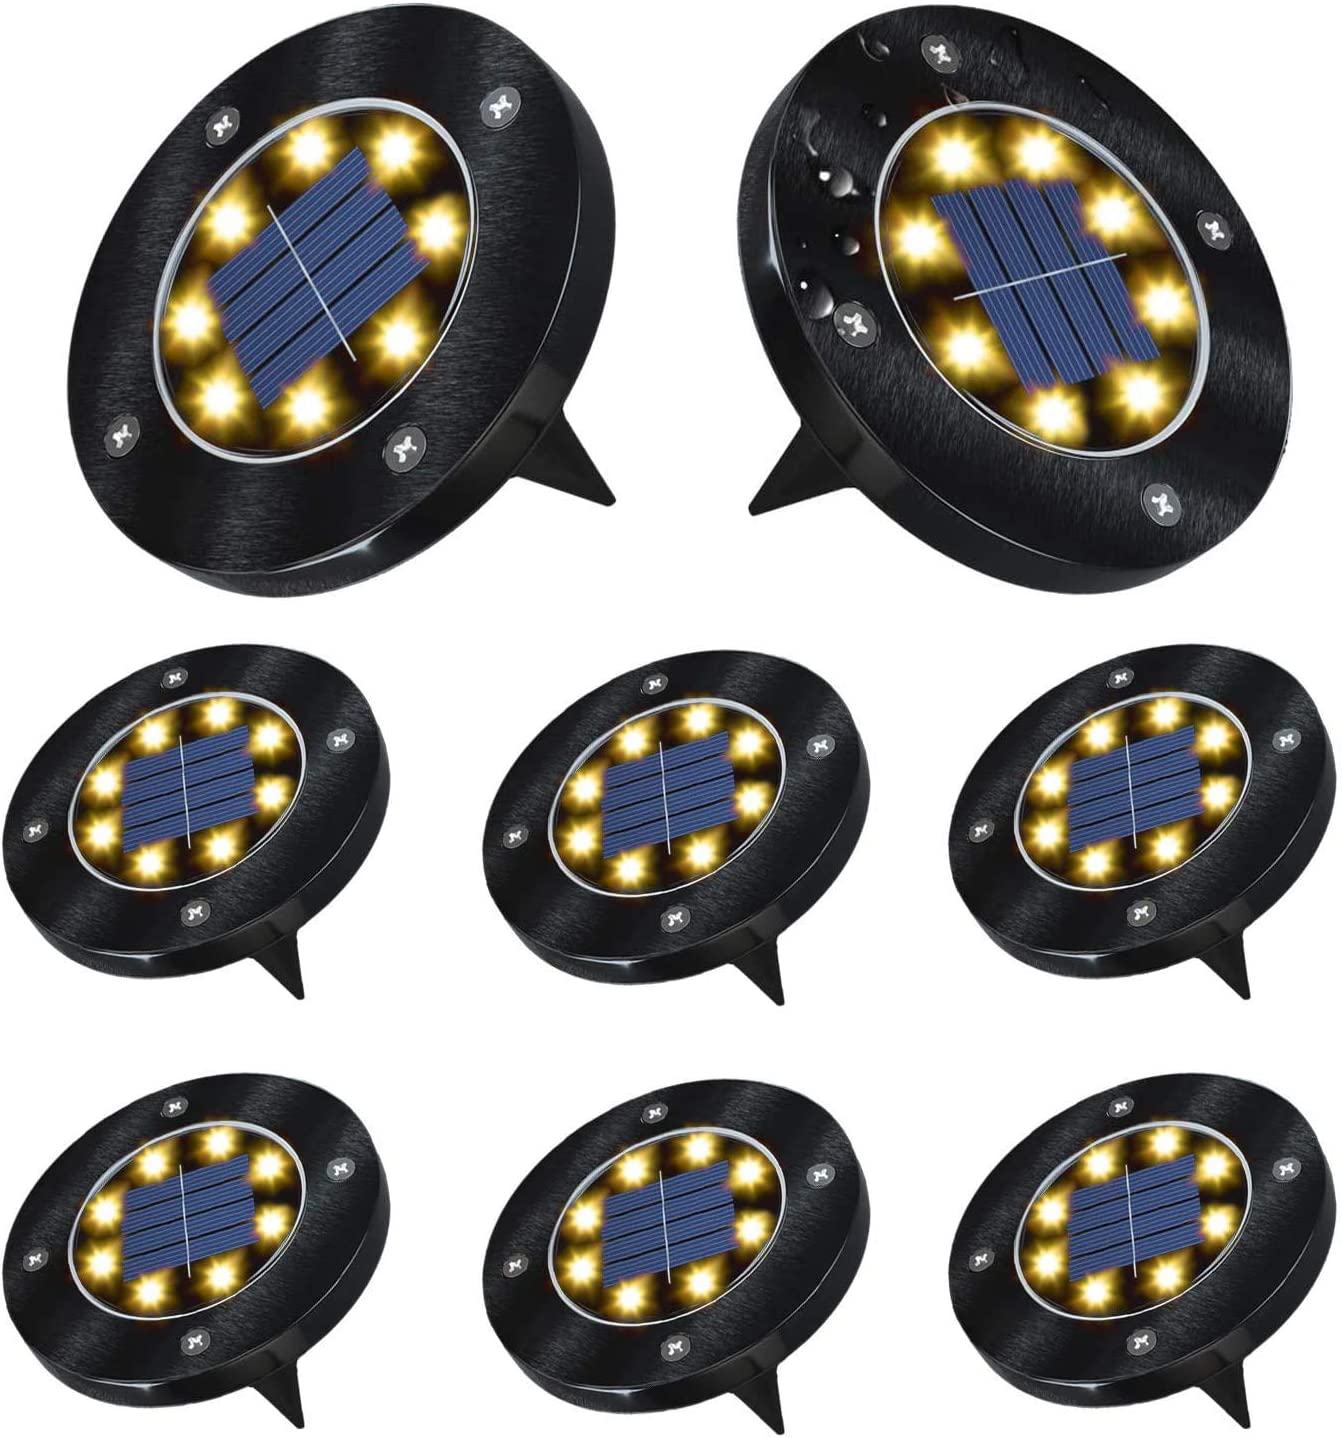 ACCGUYS Solar Ground Lights – Upgraded 8 LED Solar Disk Lights Garden Lights Outdoor Waterproof, In-Ground Landscape Lights for Lawn Yard Patio Pathway Walkway – Bright Warm White 8 Packs